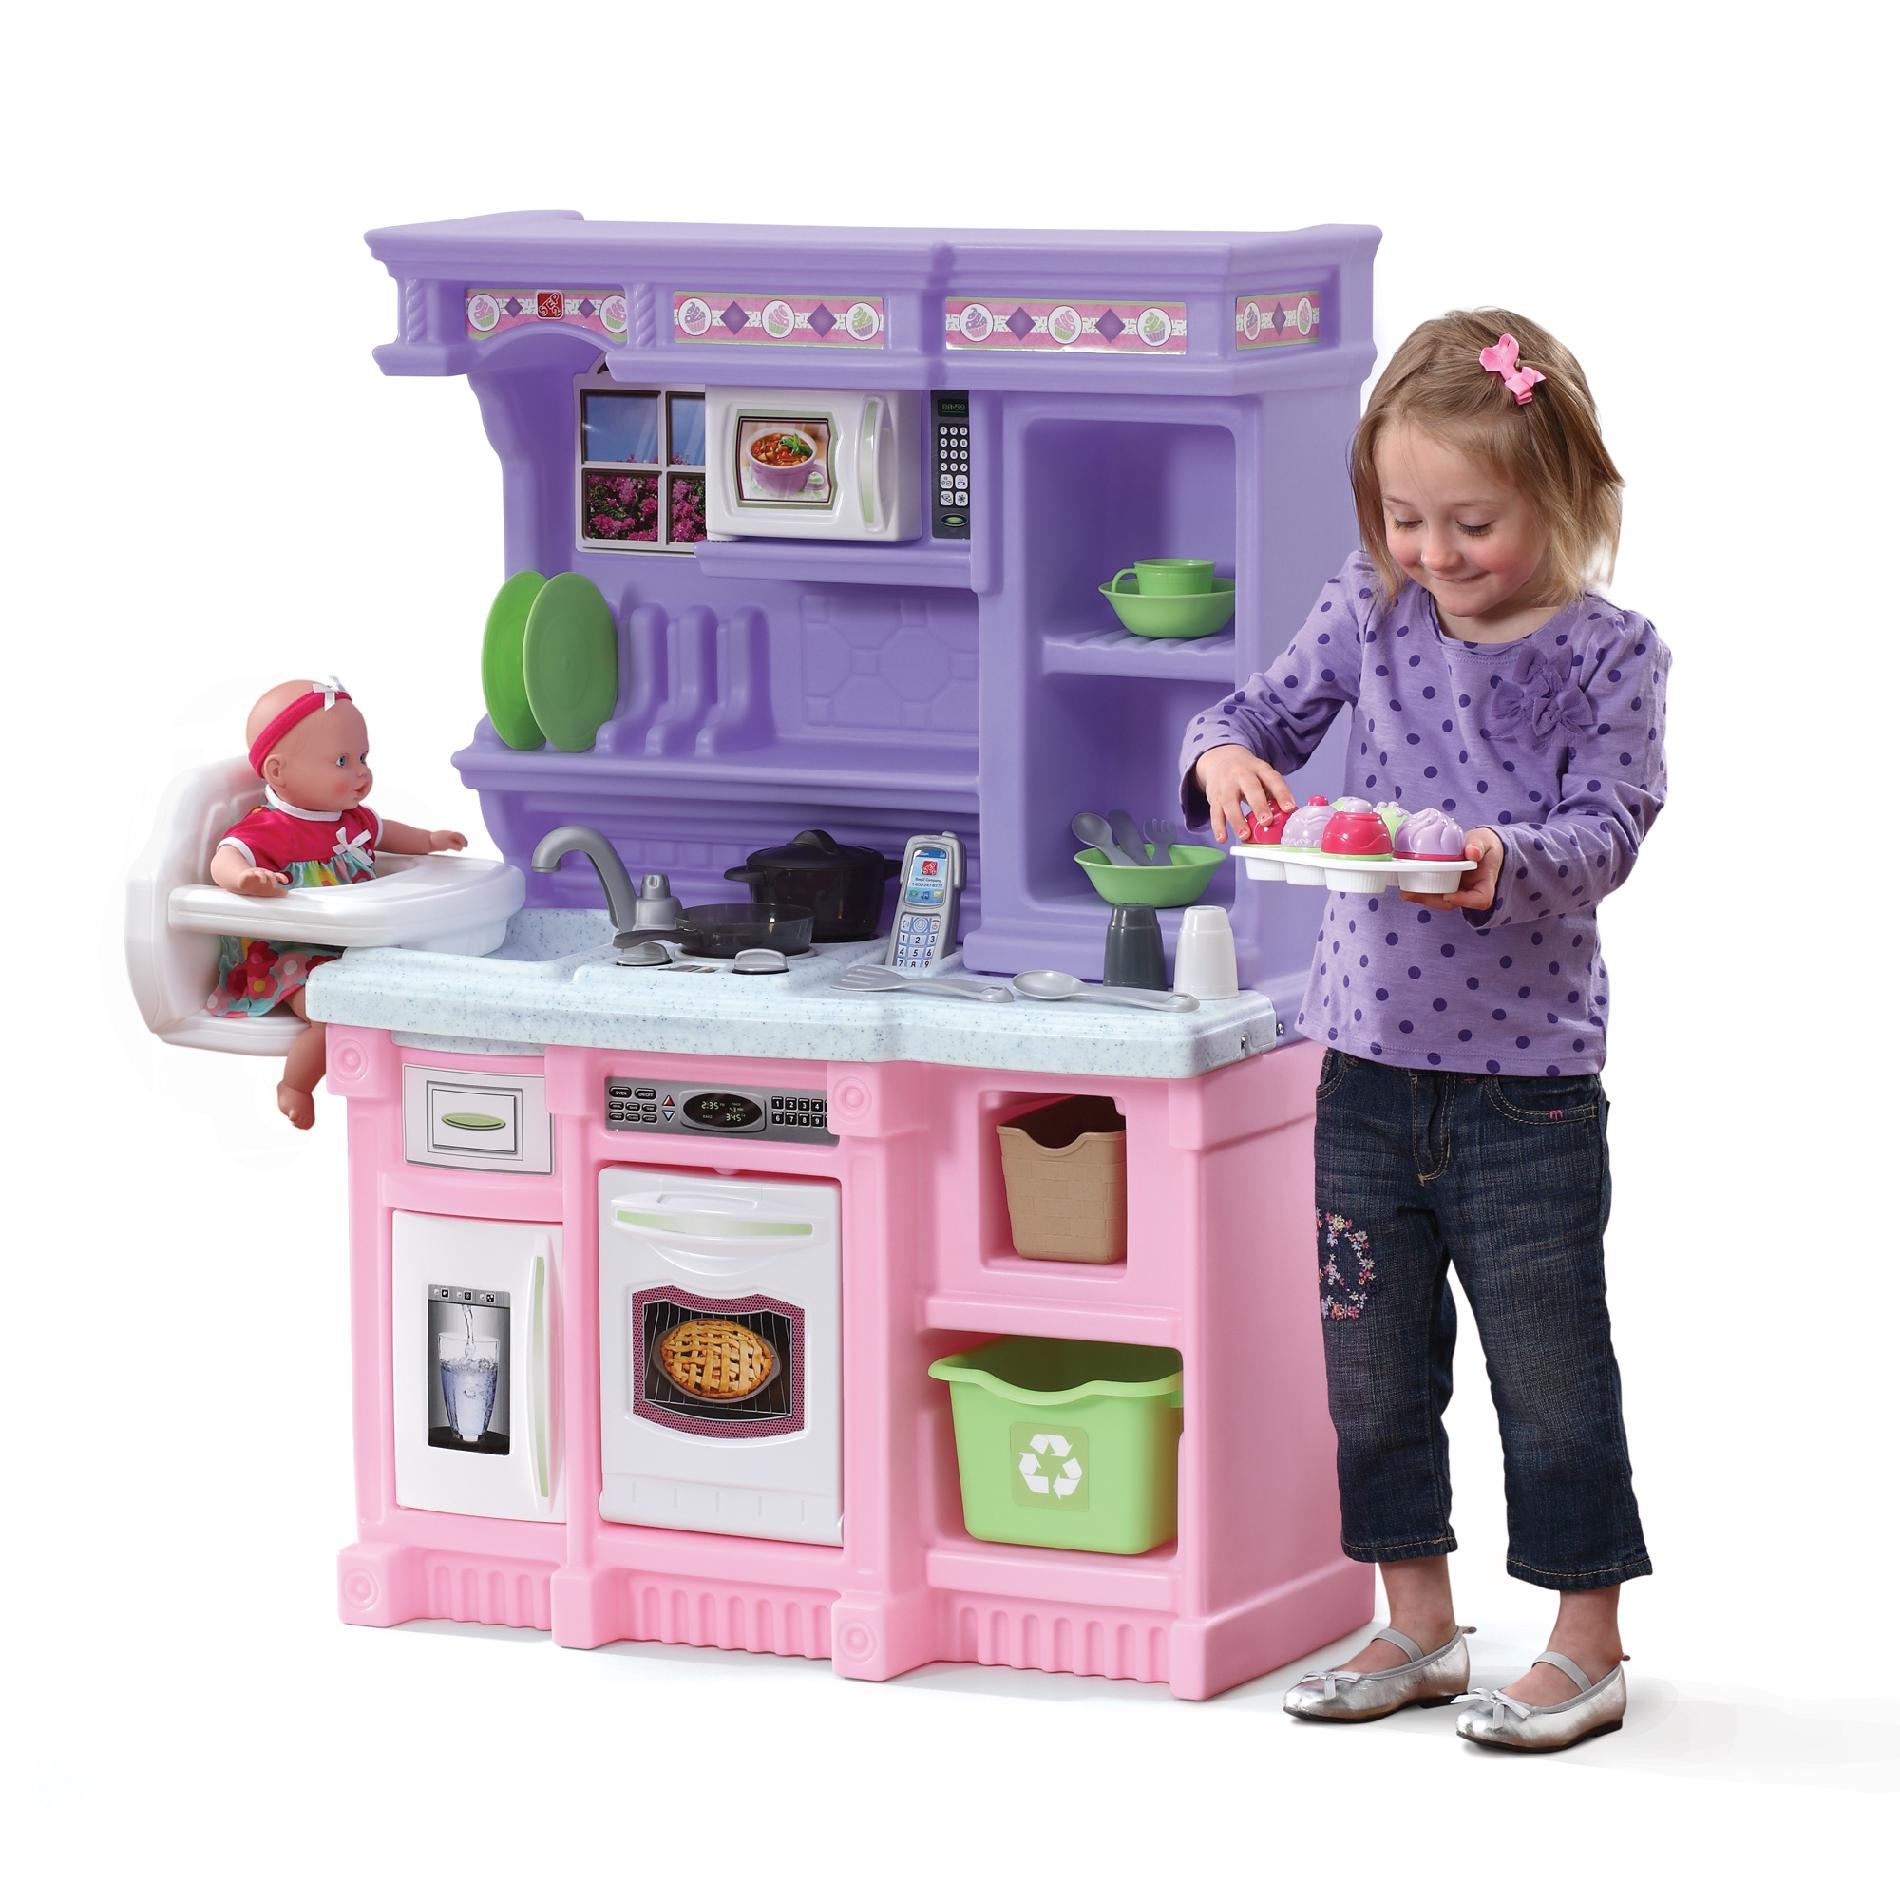 baby pink kitchen appliances distressed wood cabinets step 2 little baker 39s toys and games pretend